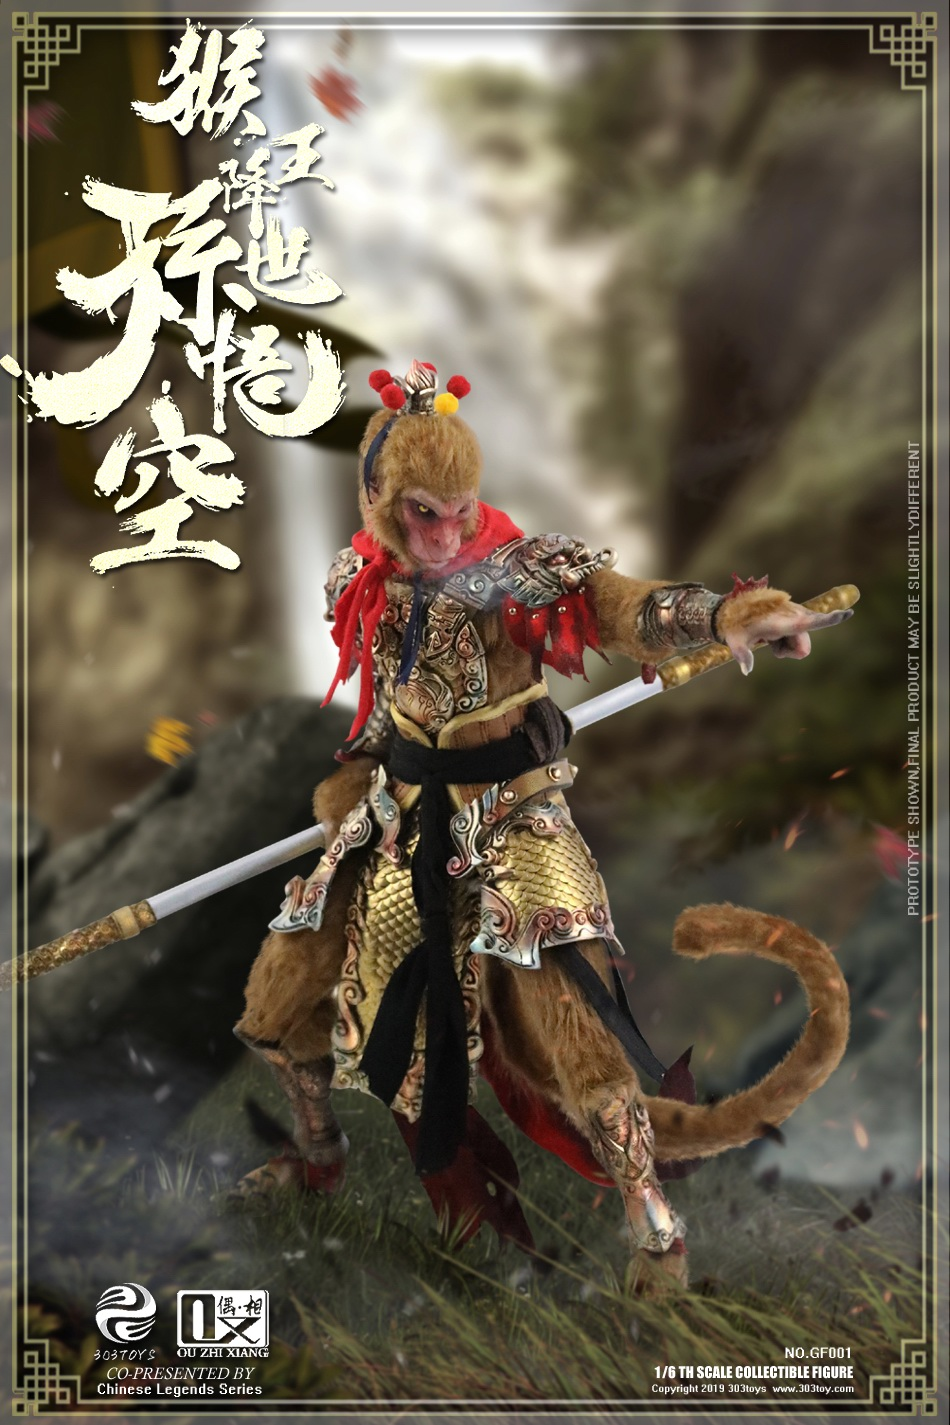 EveningPhase - NEW PRODUCT: 303TOYS x Evening phase: 1/6 National Wind Legend Series - Sun Wukong Monkey King Apocalypse & Dasheng Qitian & Stepping 18065410